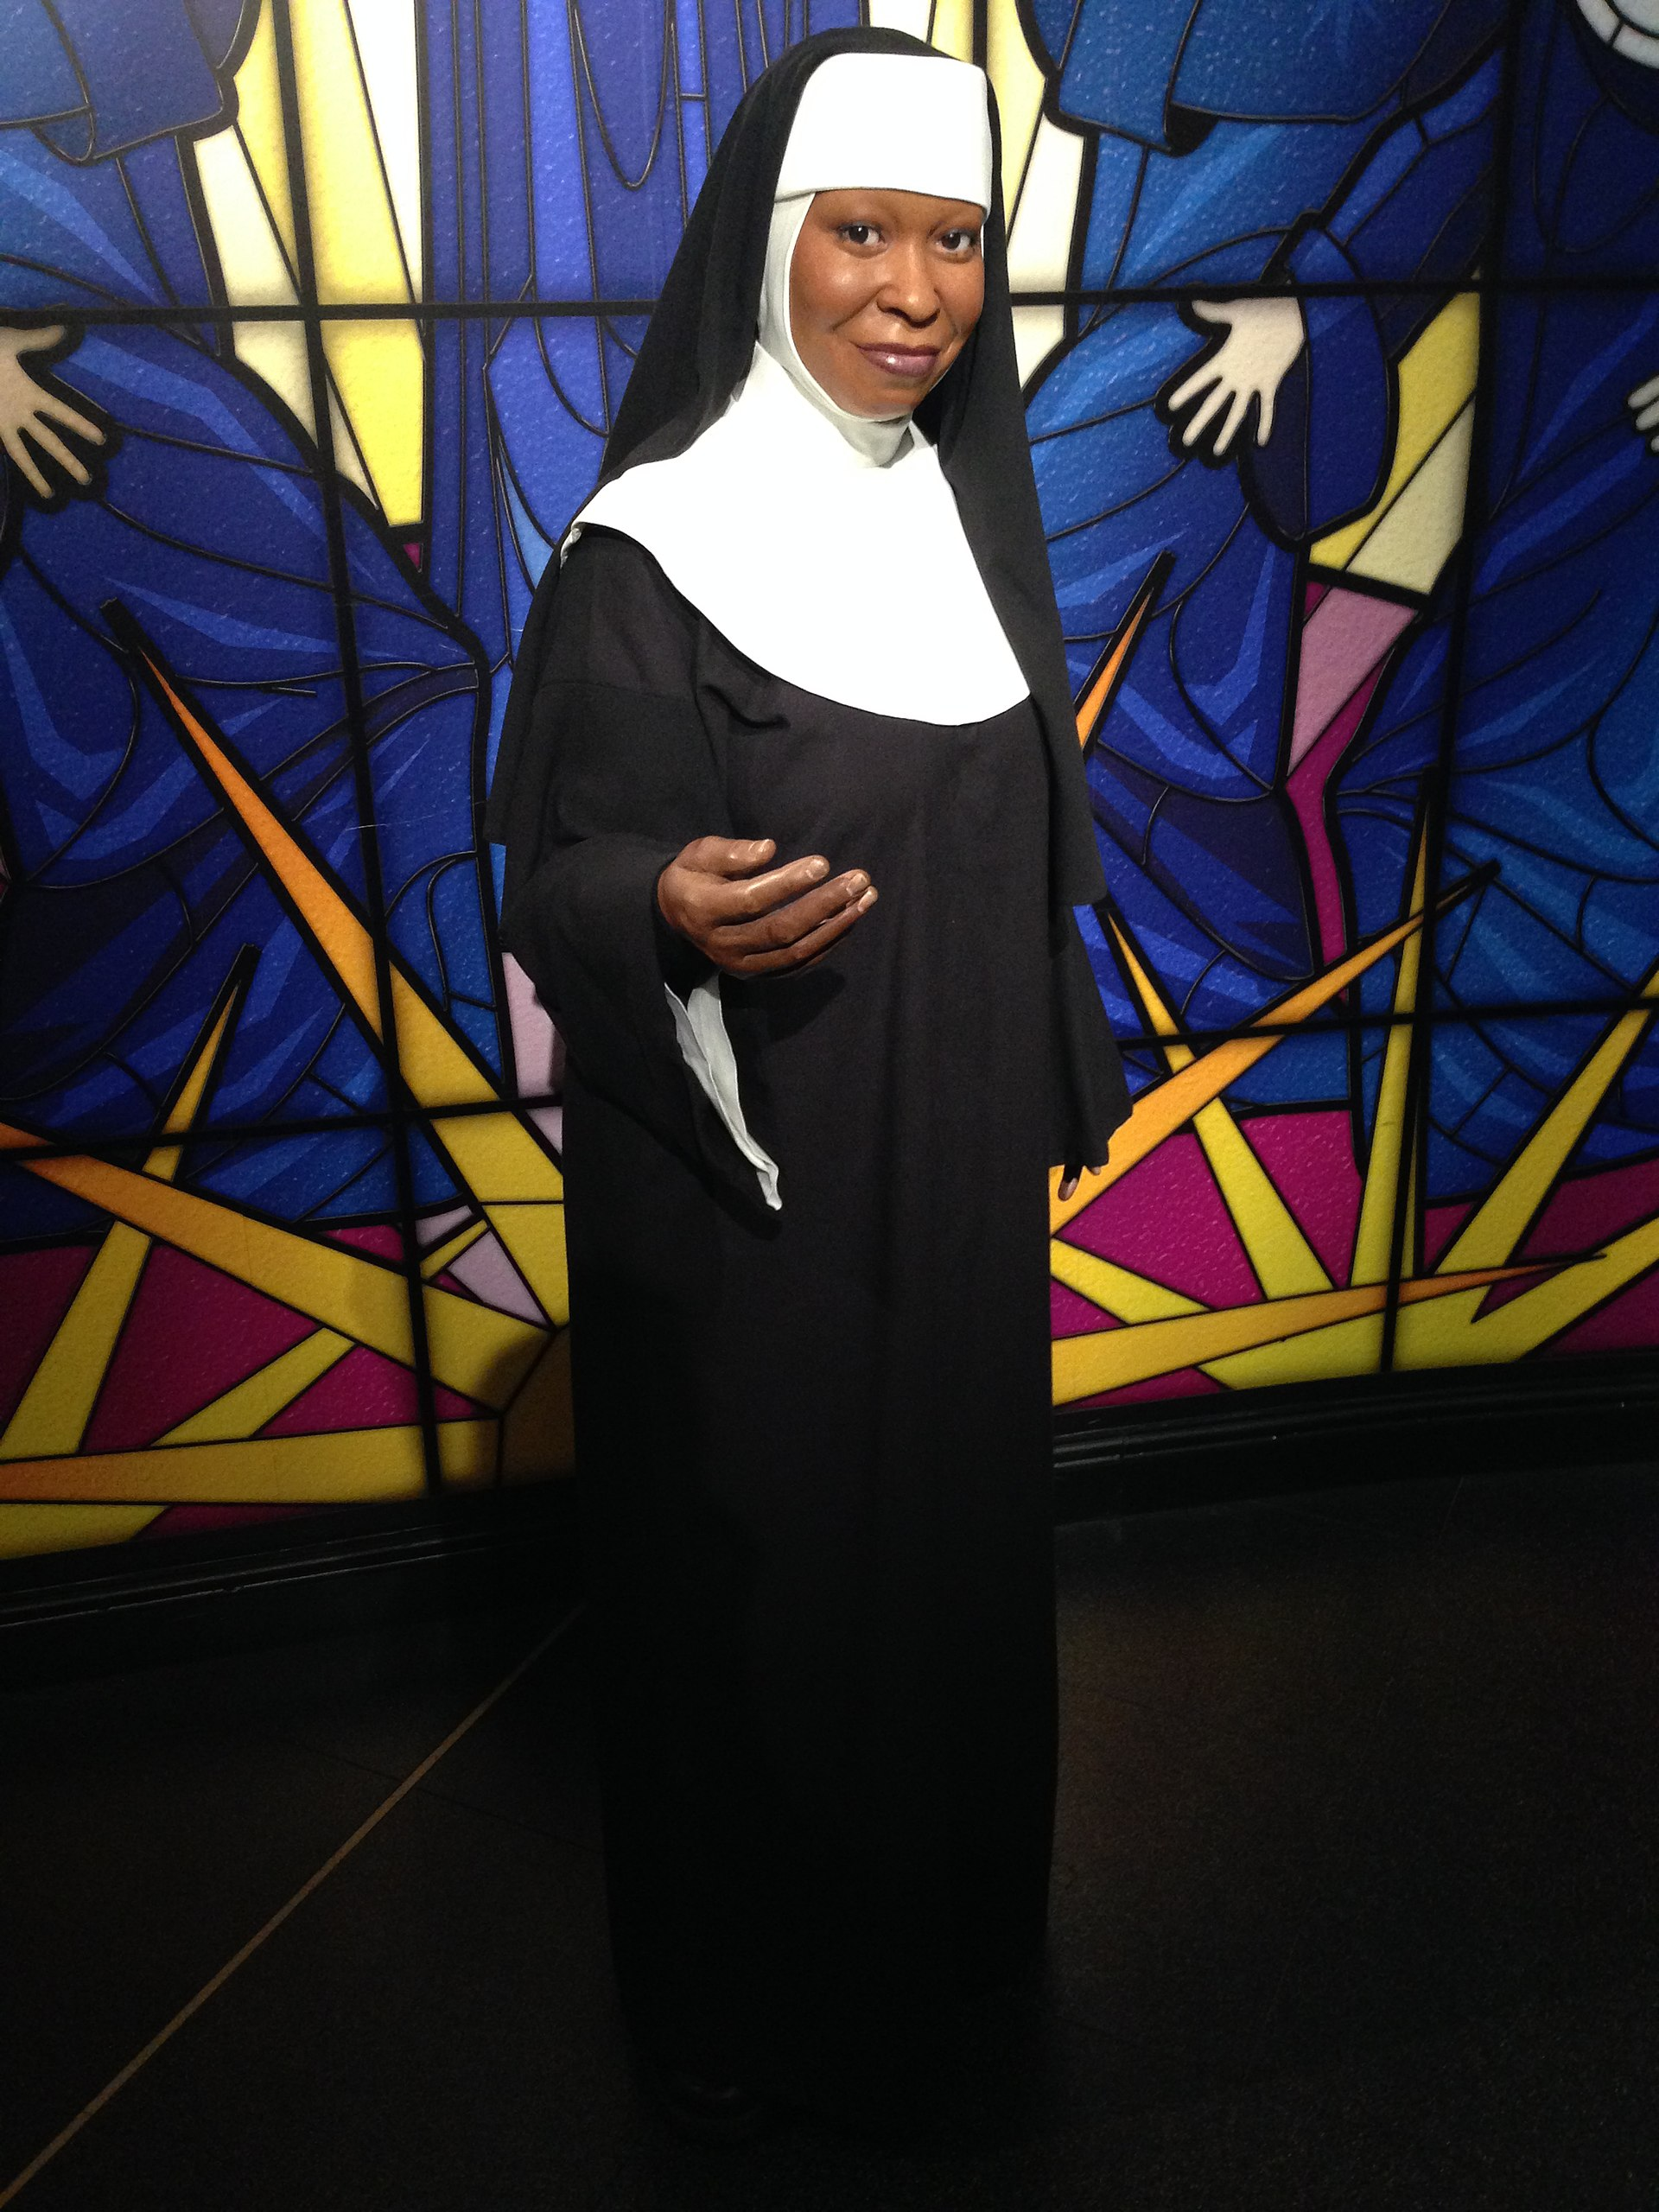 Whoopi Goldberg at Madame Tussauds London - November 1st, 2016